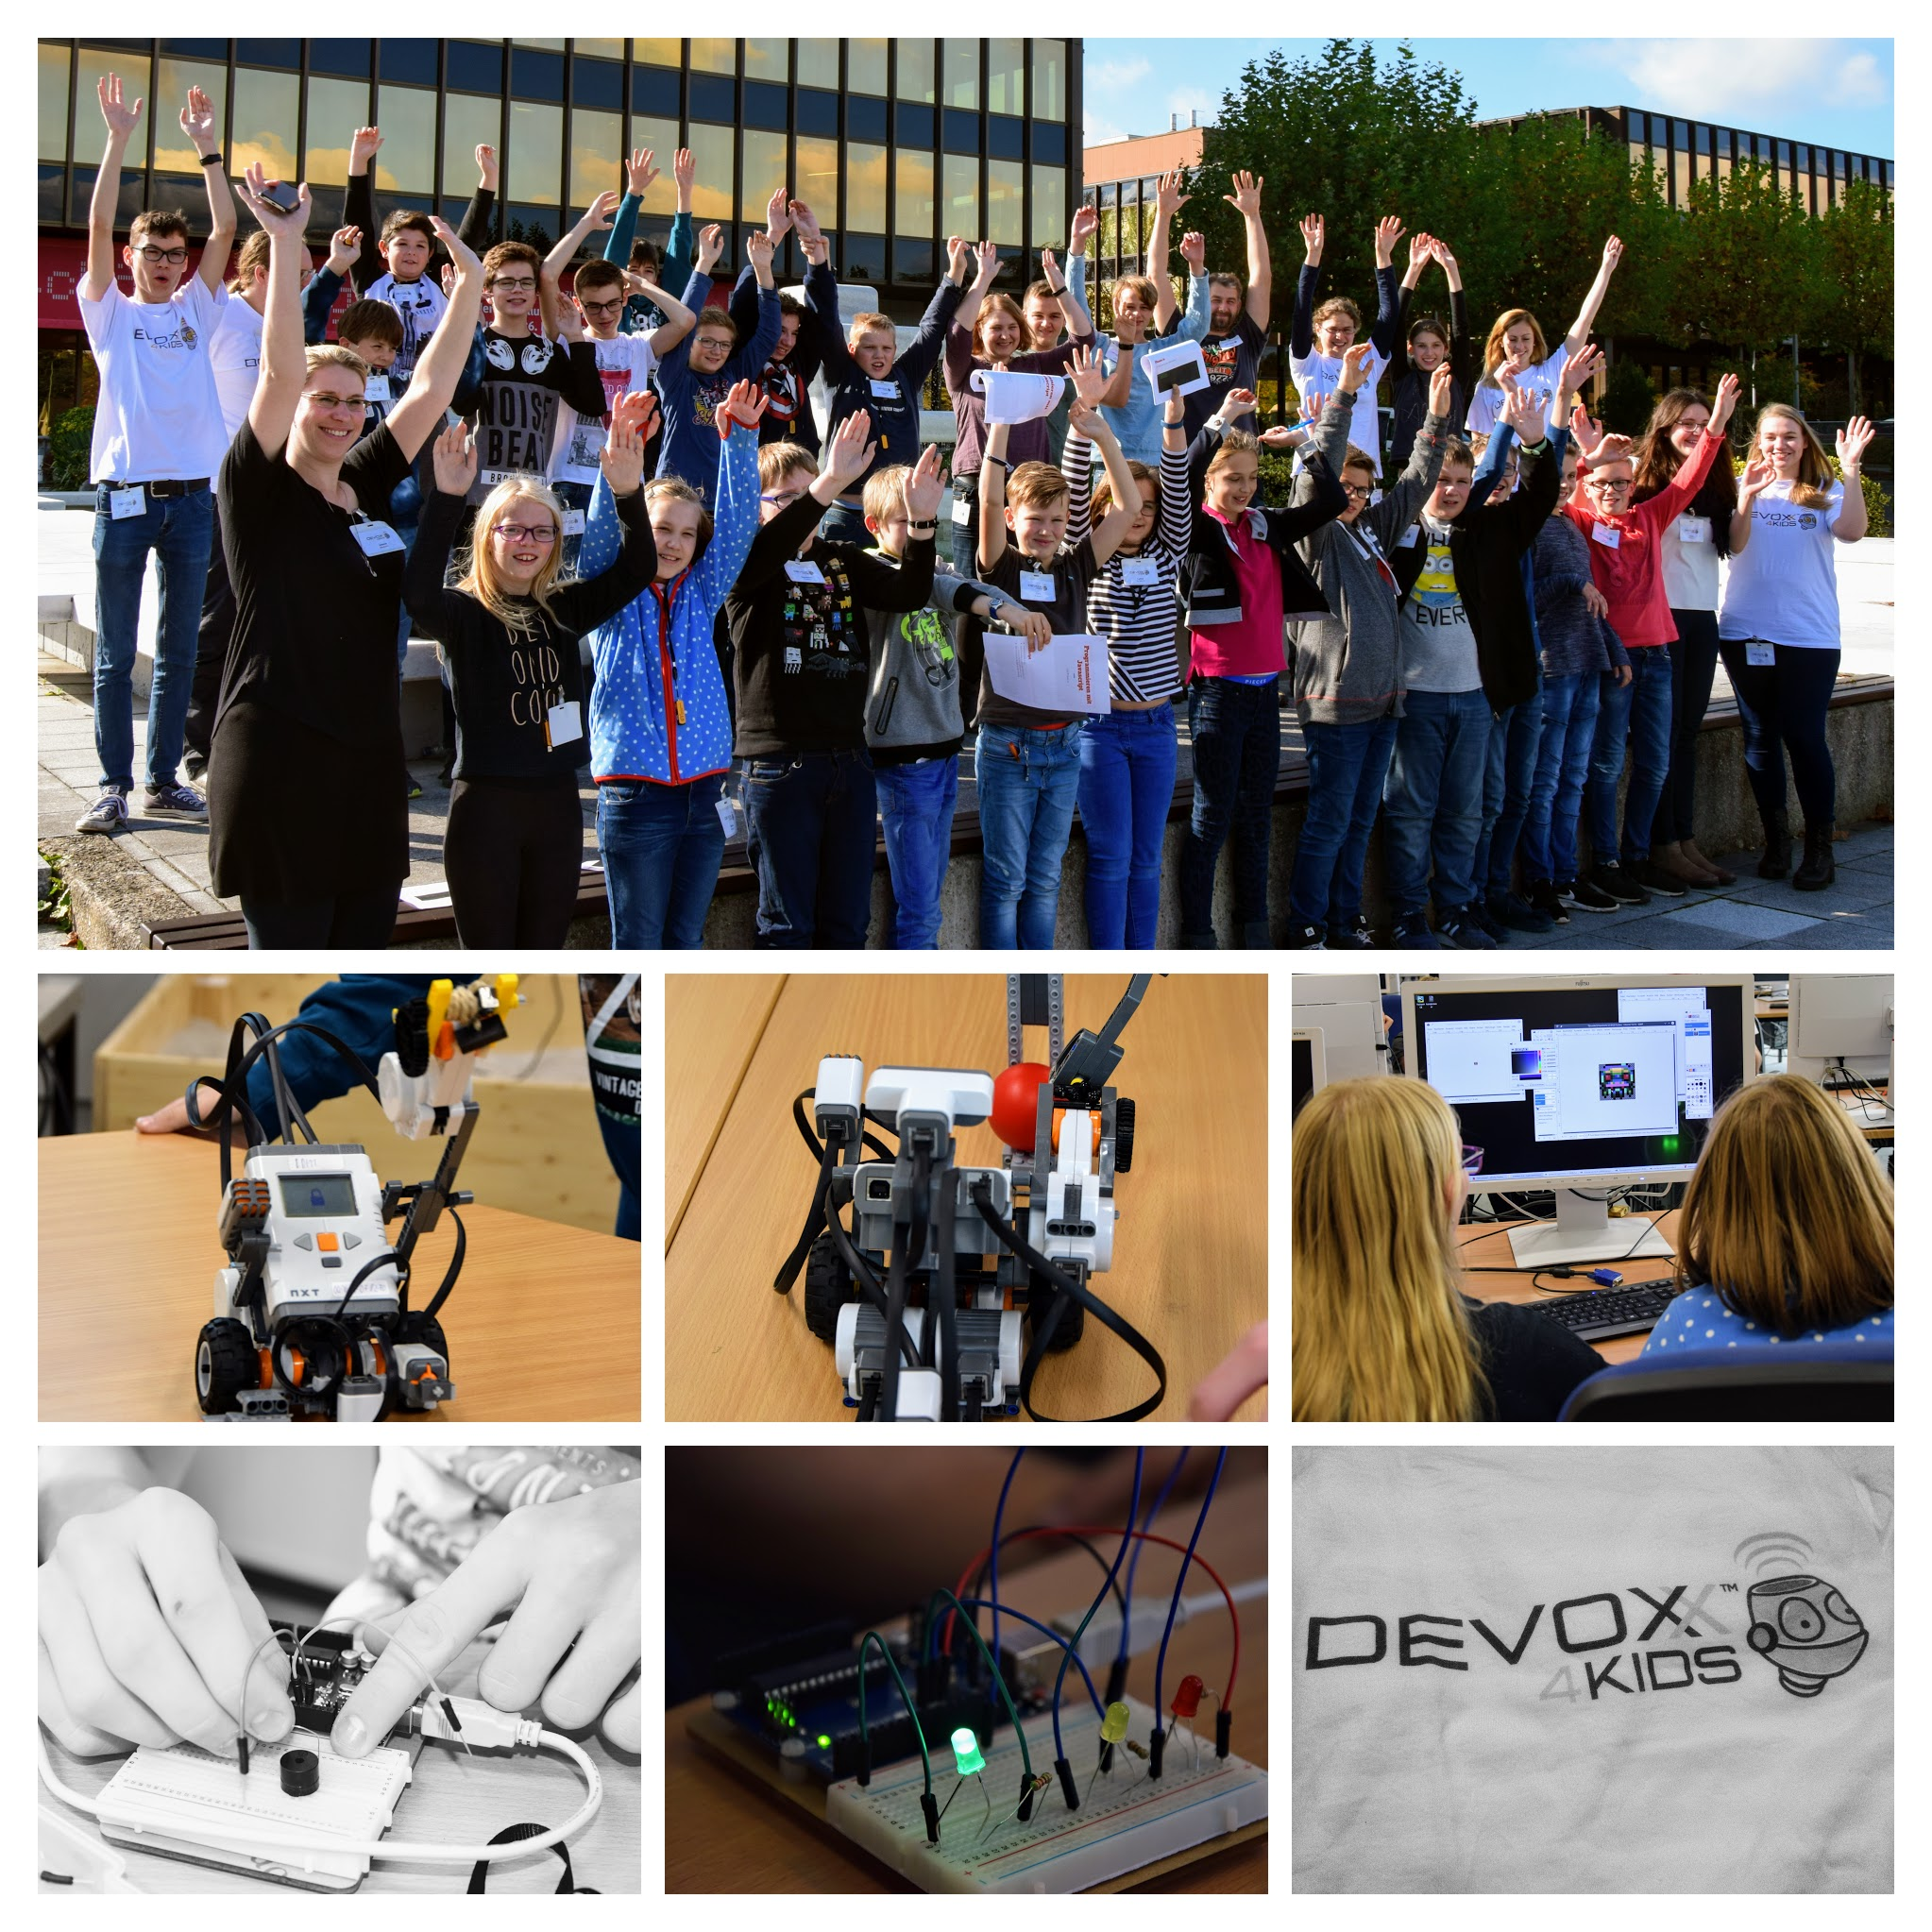 devoxx4kids 17 01 collage